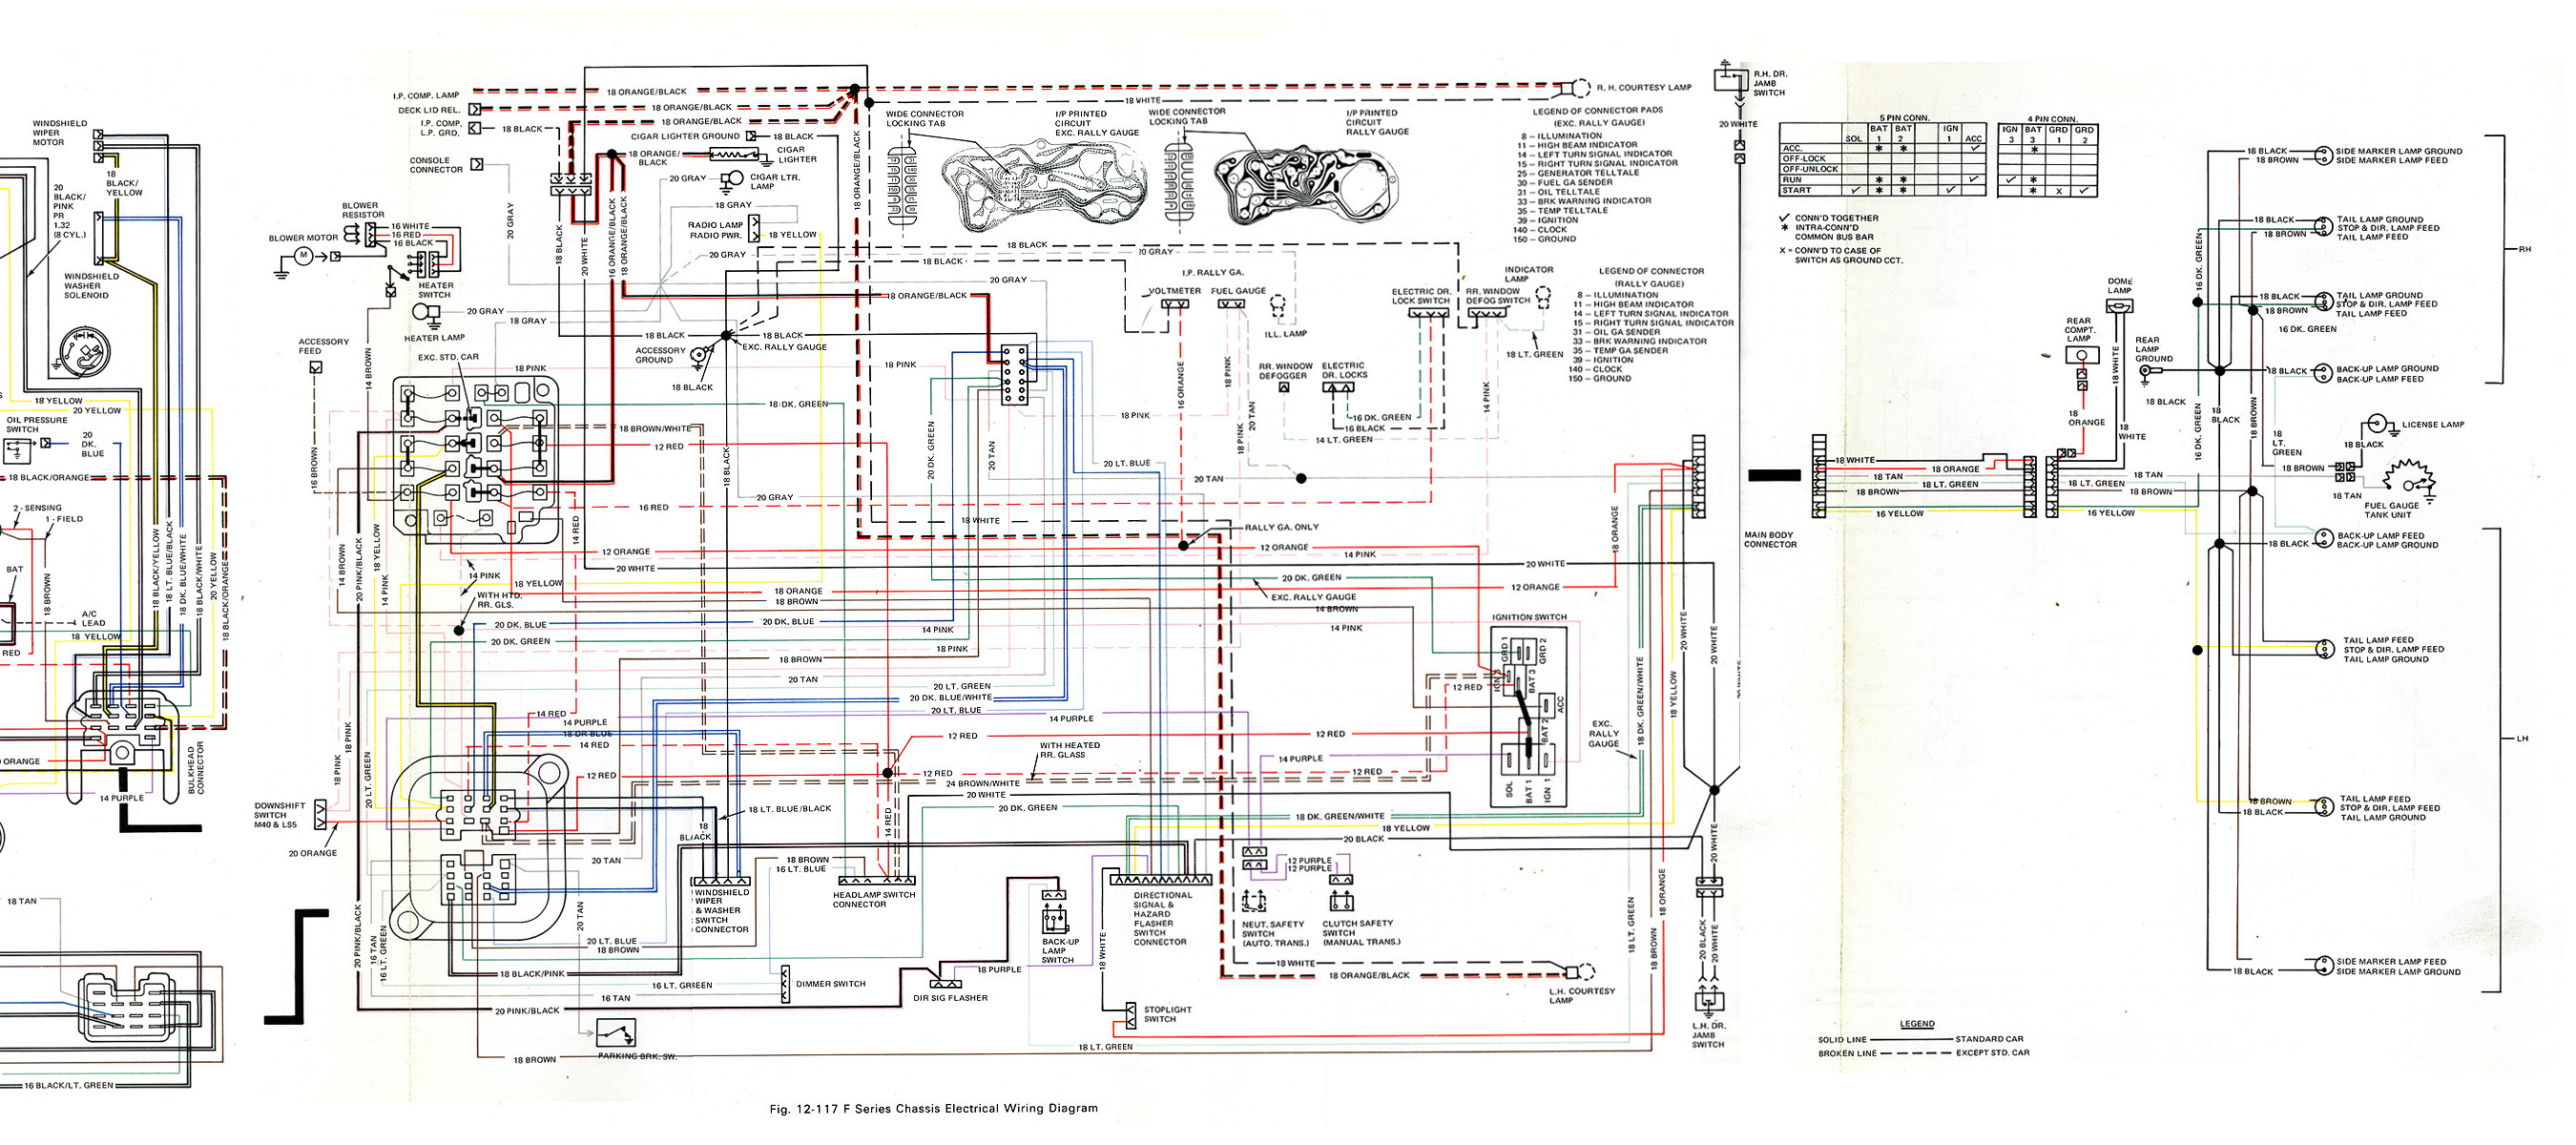 birdfire com library, document on 1973 Pontiac Firebird Wiring Diagram for trans am macho 79 193ko), electric plan at 1967 Pontiac Catalina Wiring-Diagram